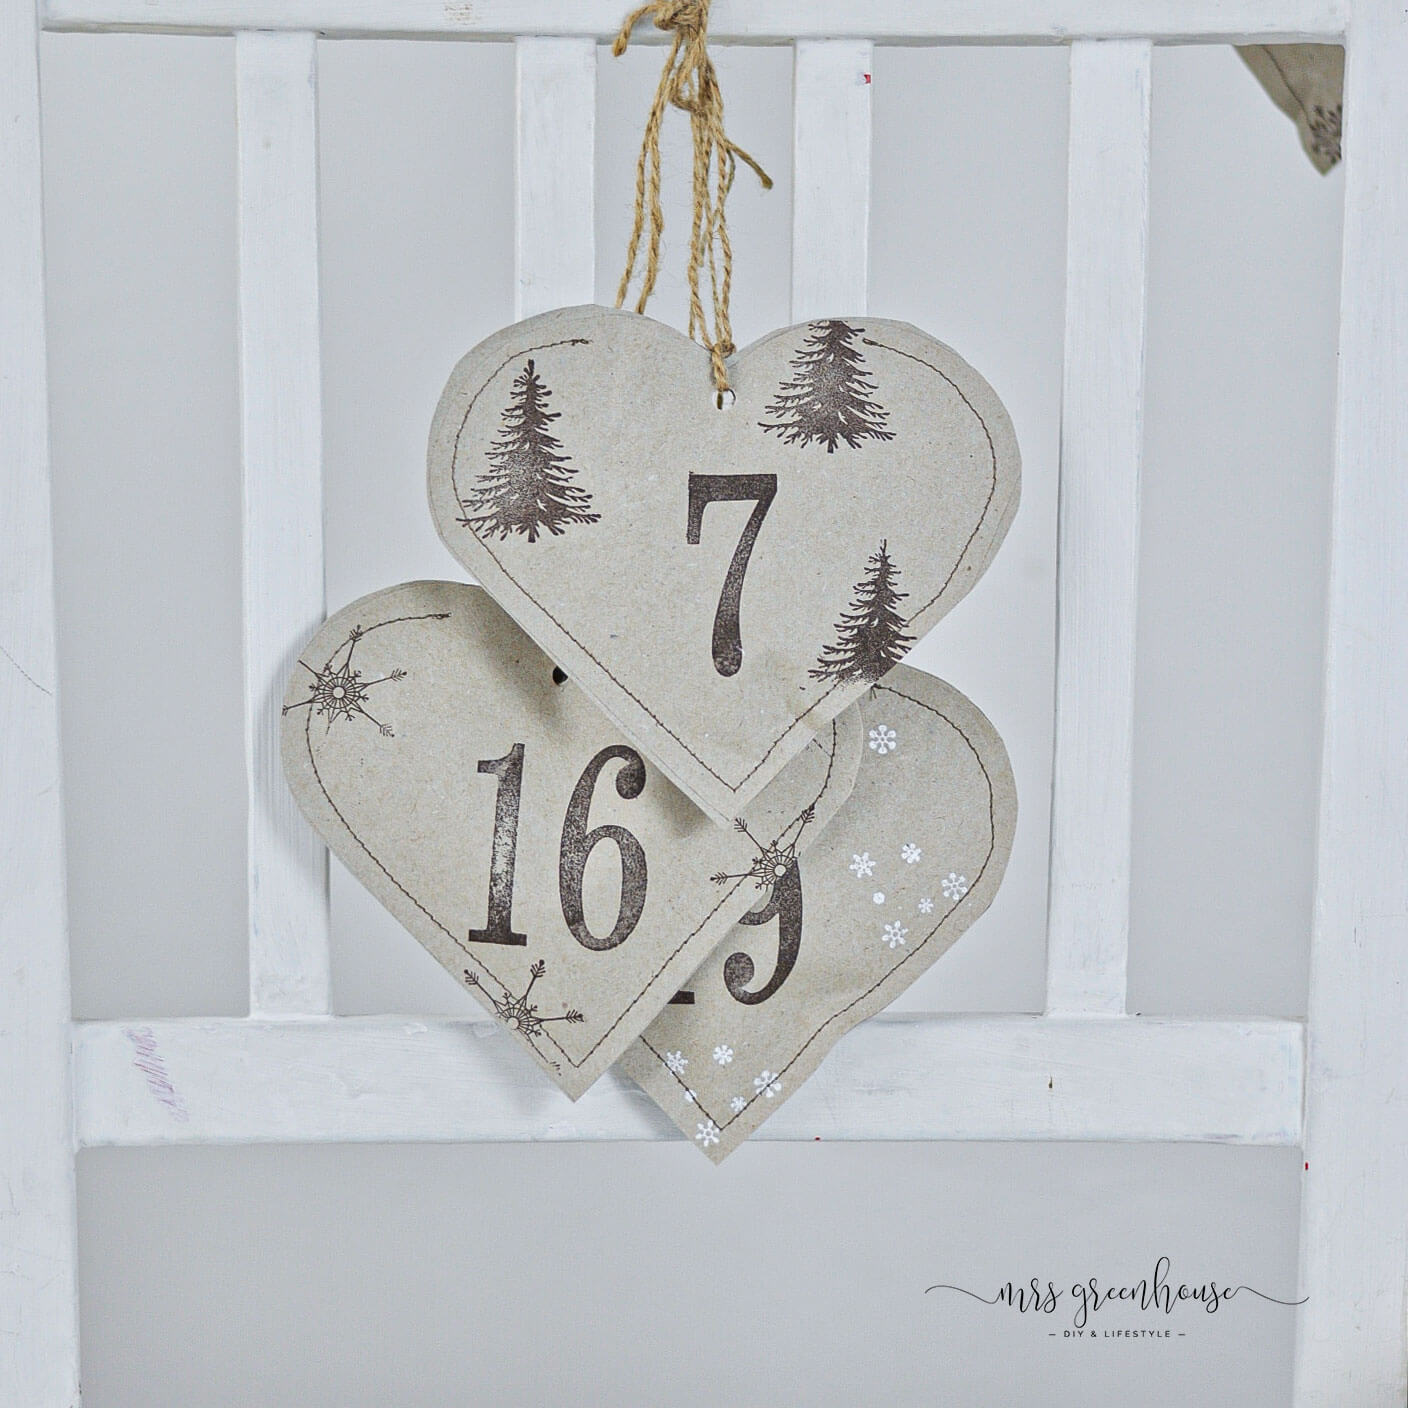 Adventskalender Upcycling aus Papier